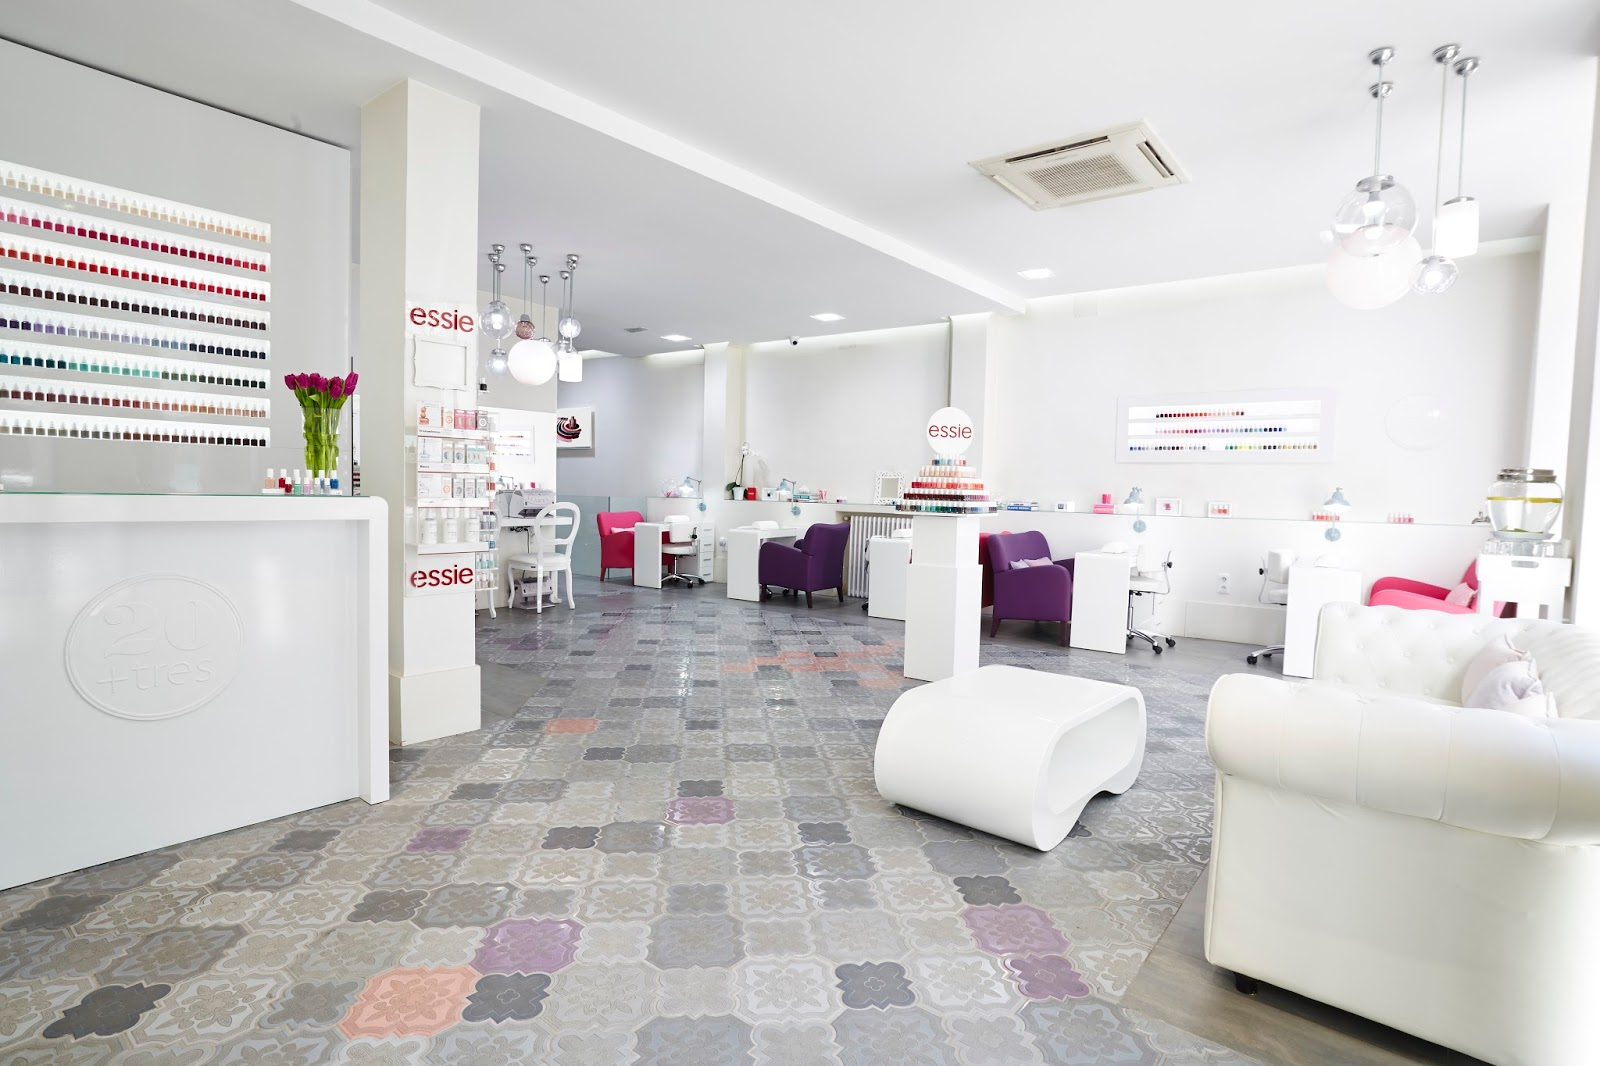 Reposapies Salon Spa Pedicure Salon Ideas T Saln Spa Y Pedicura